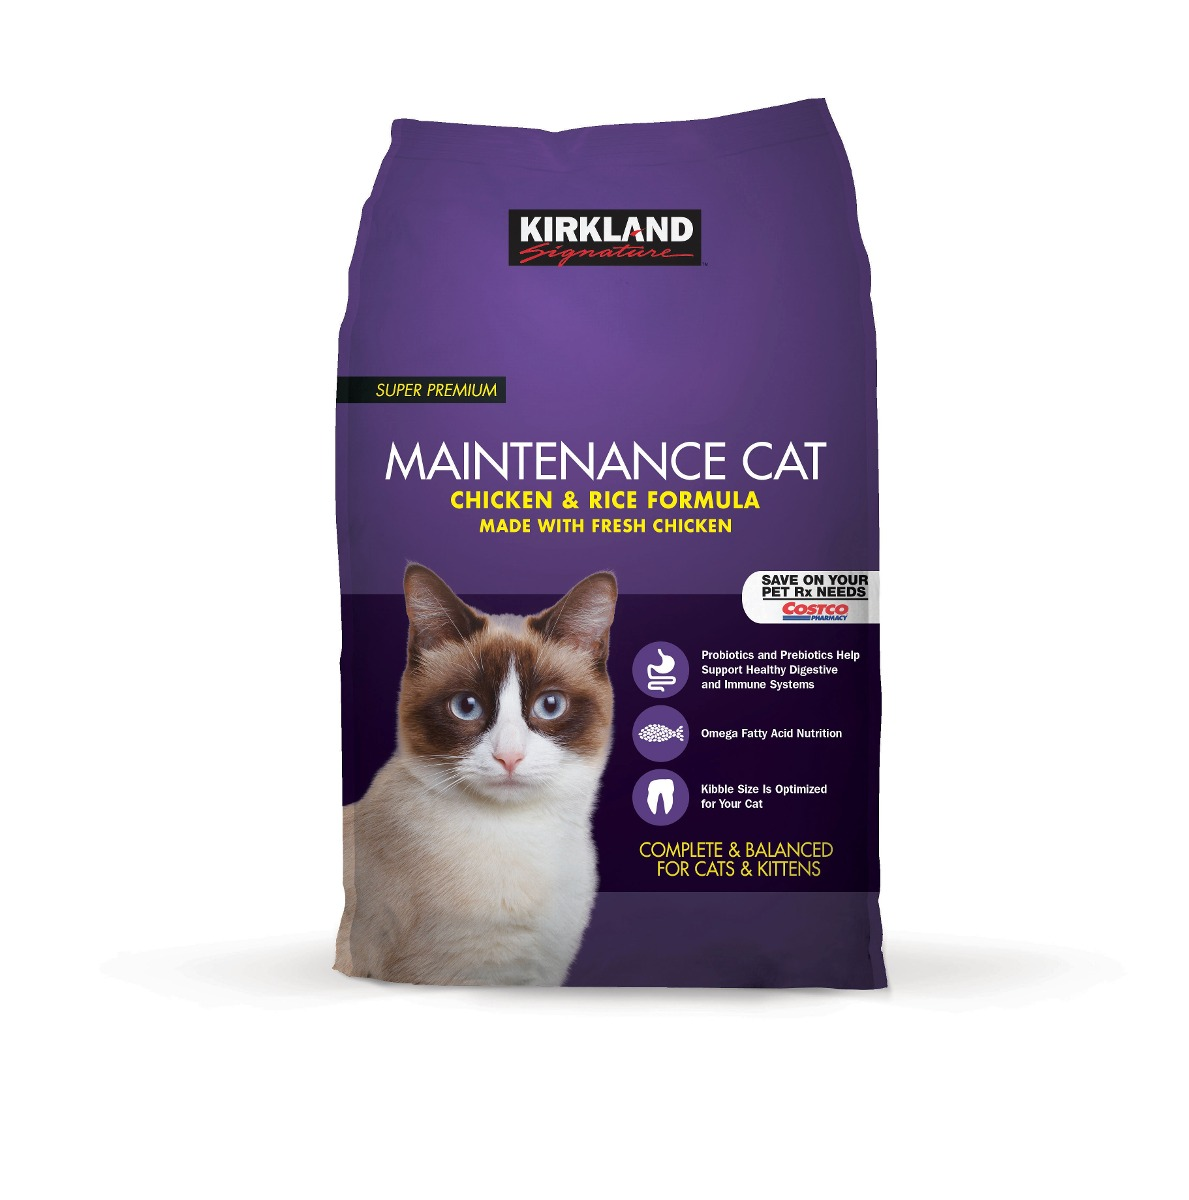 Kirkland Cat Food